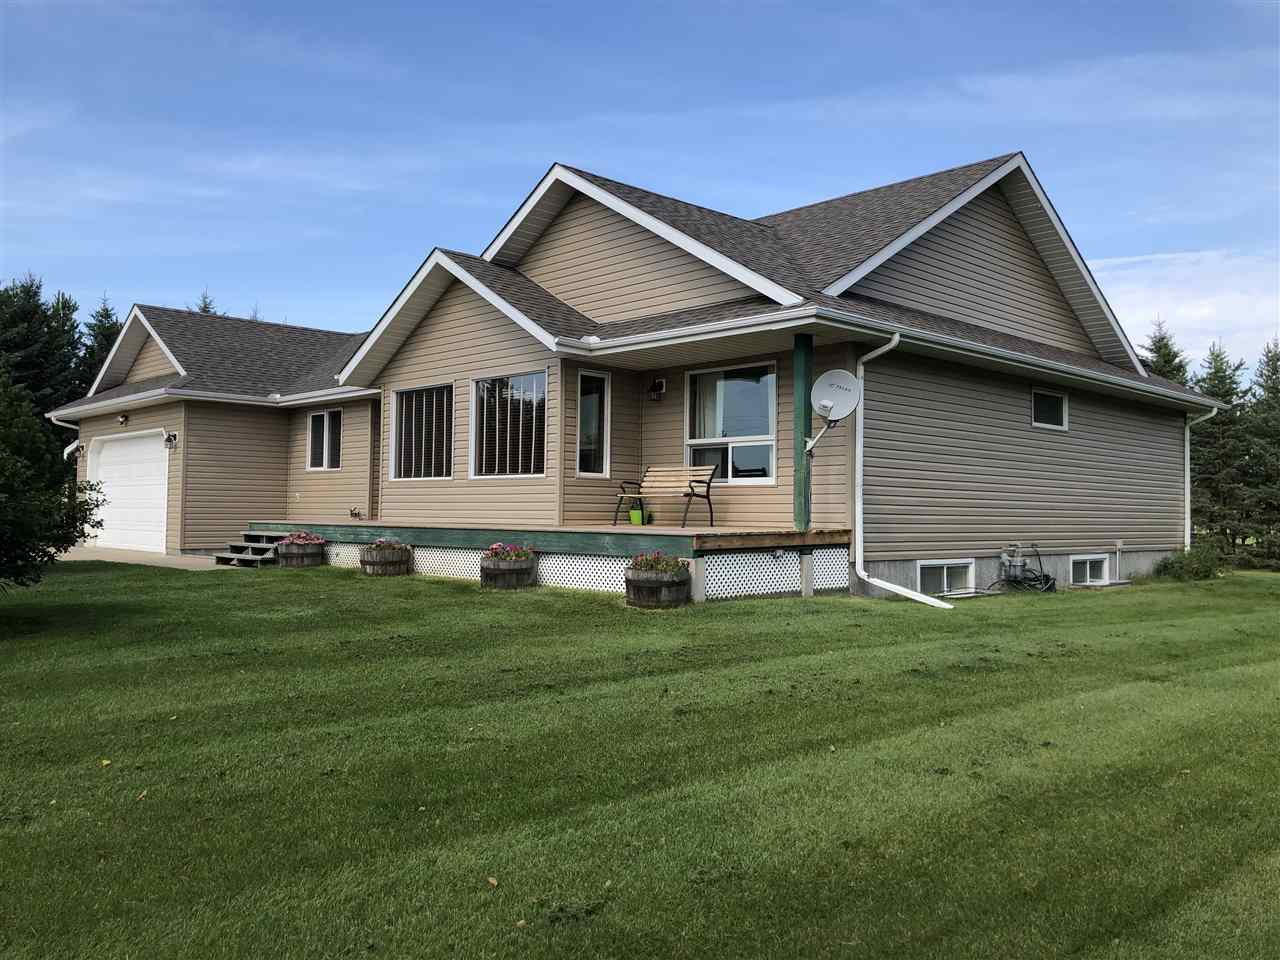 Main Photo: 263018 TWP RD 464: Rural Wetaskiwin County House for sale : MLS®# E4204633